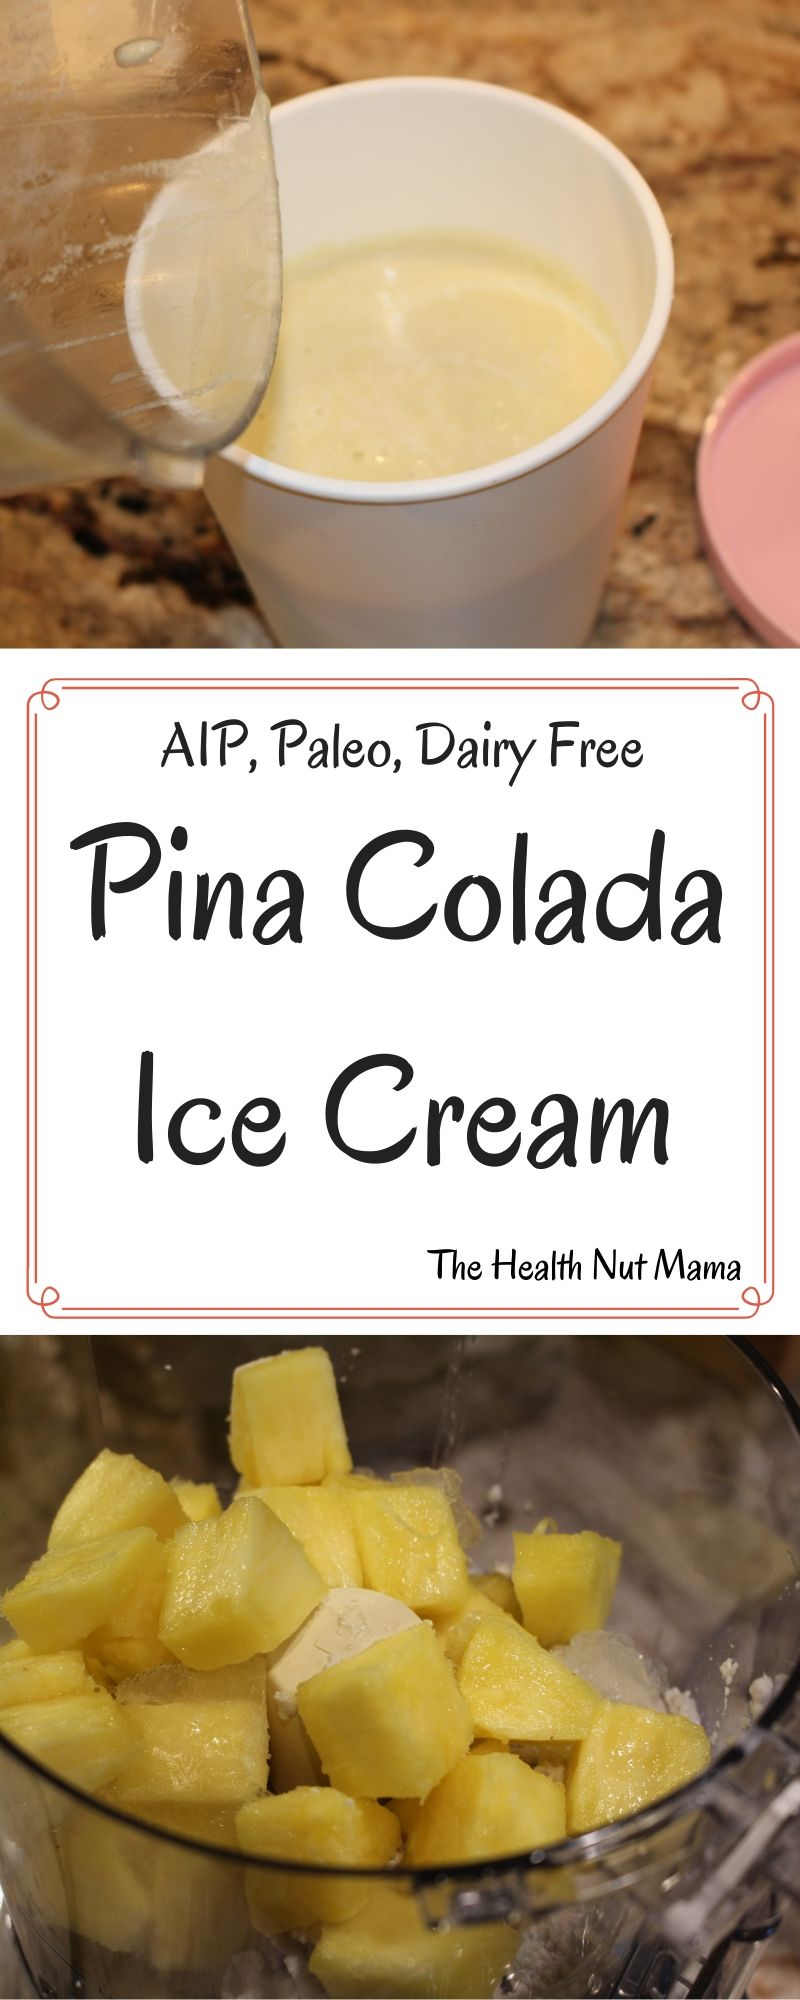 AIP Pina Colada Ice Cream is so easy to make. A Delicious & Healthy Dairy Free Summer treat that you & the kids will love! #aip #paleo #aipdessert #aipicecream #paleo #paleodessert #nondairy #dairyfree #icecream #dairyfreeicecream #glutenfree #thehealthnutmama